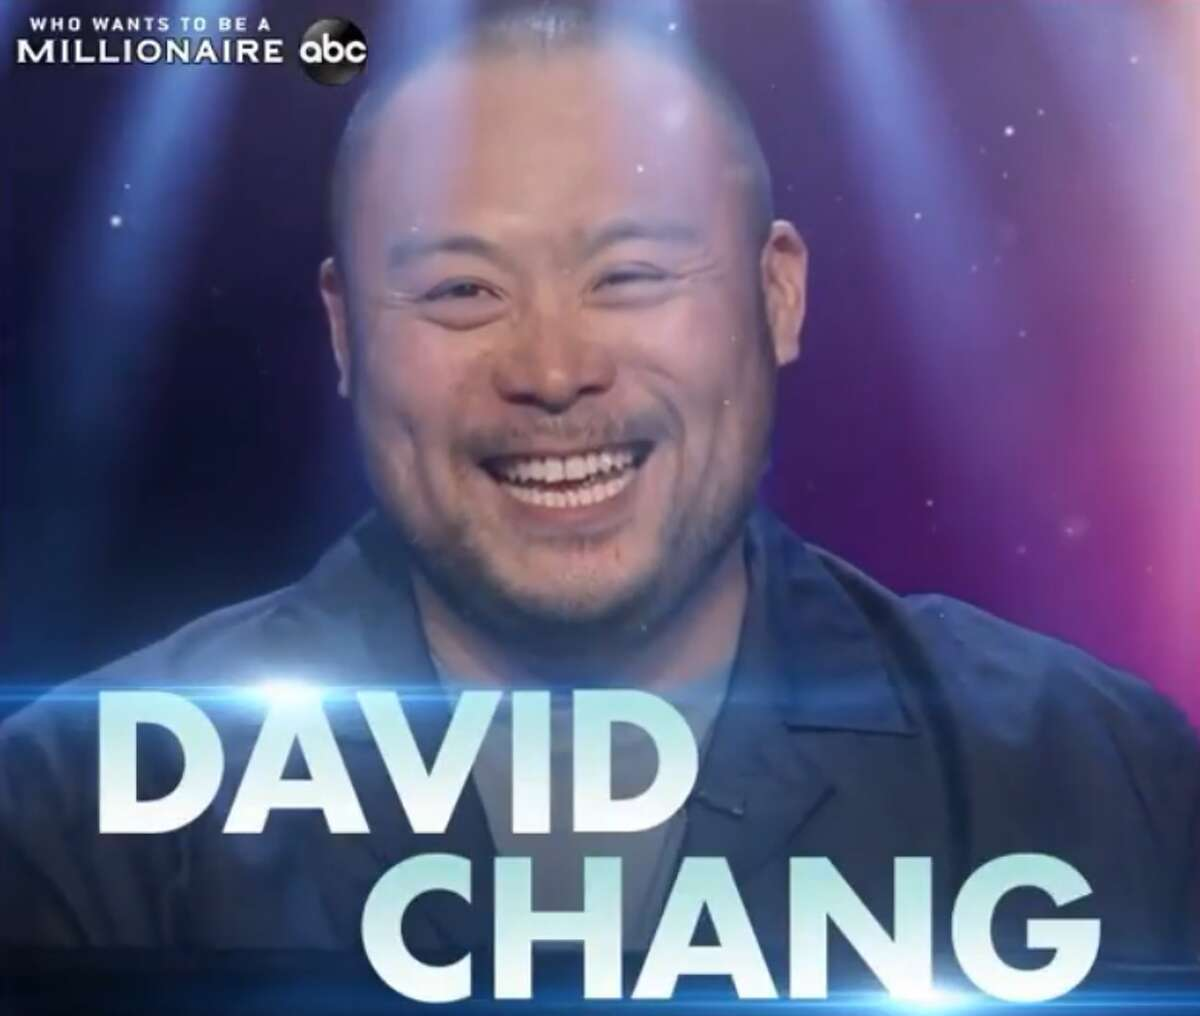 Celebrity chef David Chang will be competing for the Southern Smoke Foundation during the Sunday, November 15, episode of Who Wants to Be a Millionaire. (Screengrab courtesy of David Chang via Instagram)